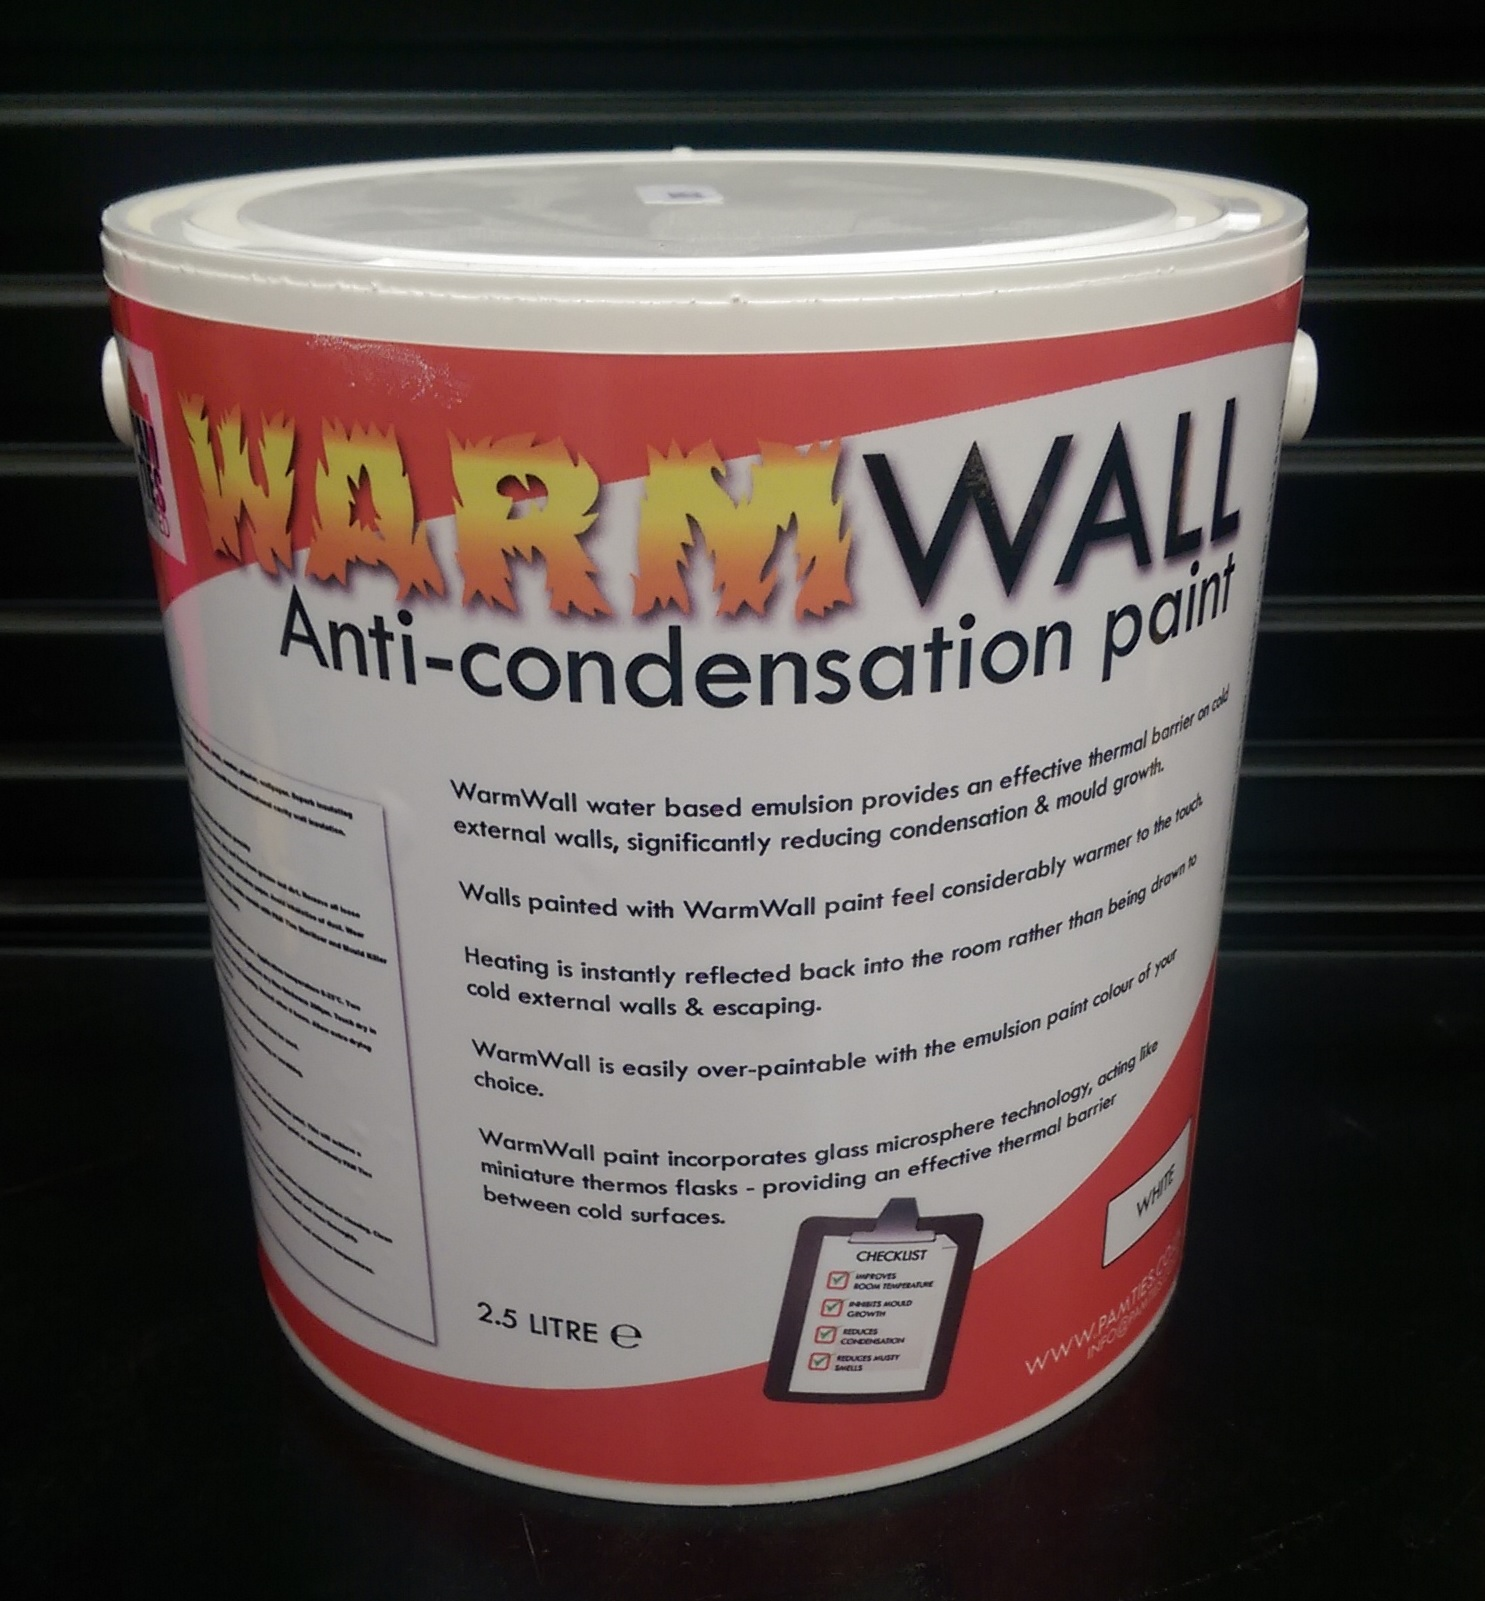 WarmWall anti-condensation paint